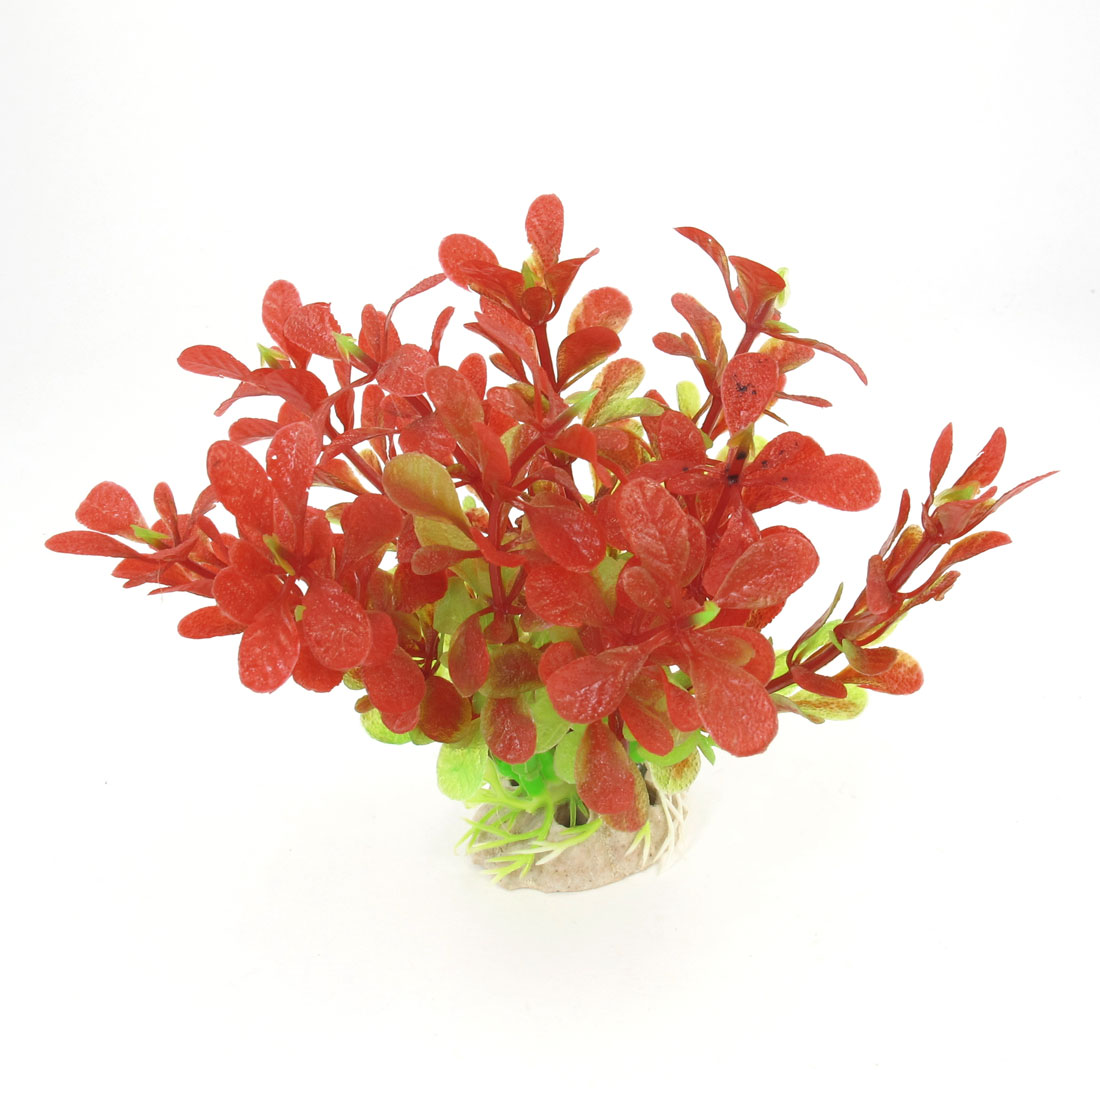 "Aquarium Ornament Ceramic Base Emulational Red Green Plant Water Grass 4.3"" High"